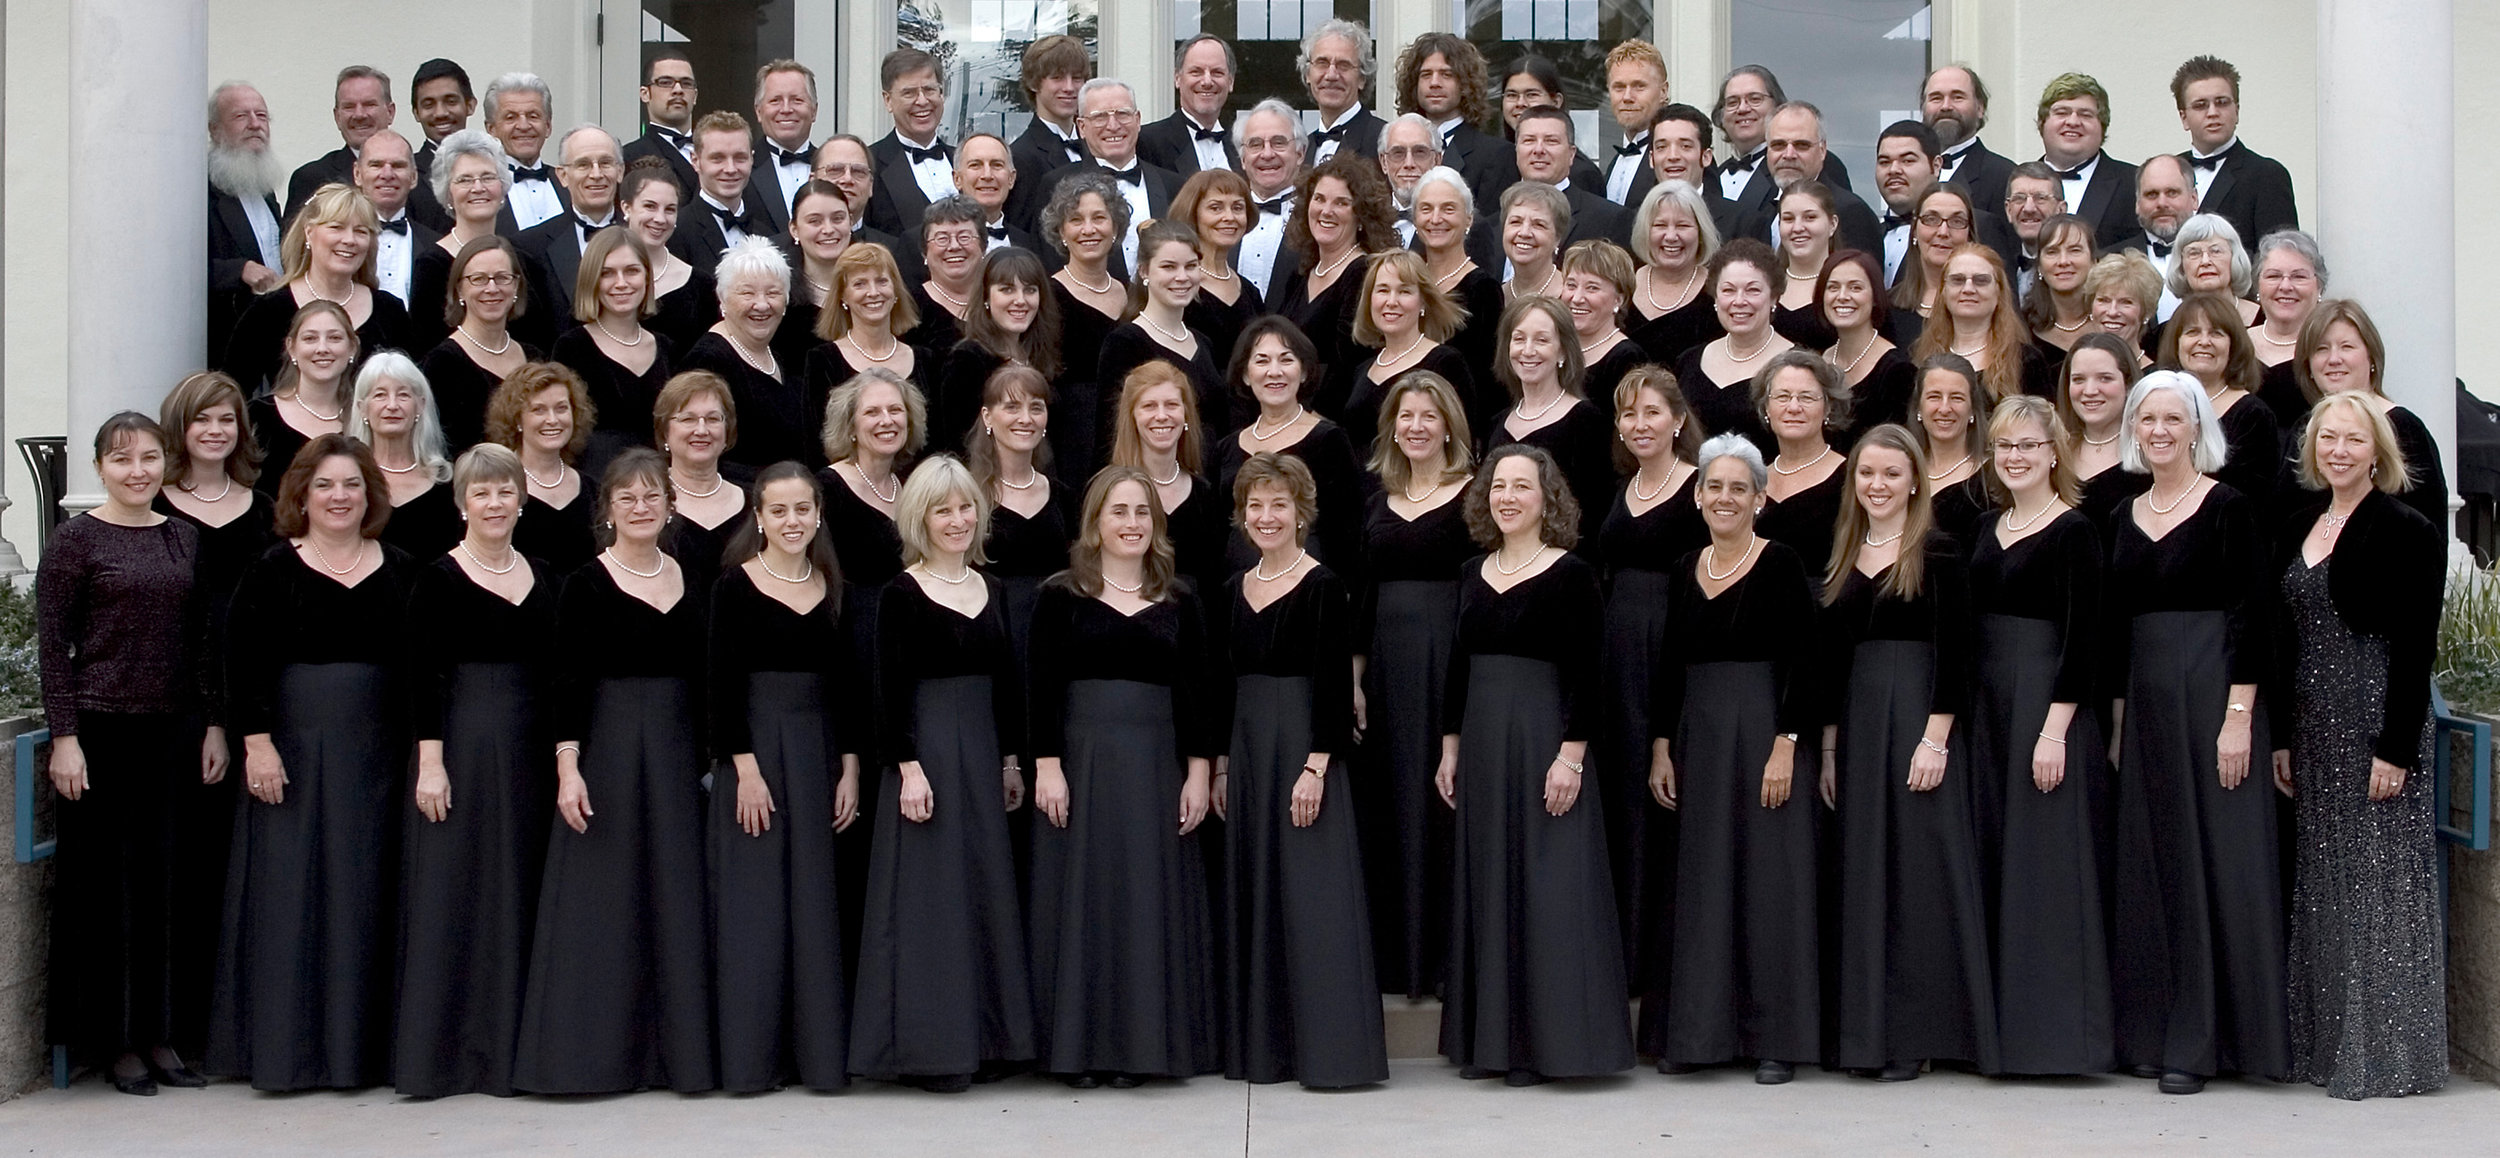 The  Cabrillo Symphonic Chorus , directed by Cheryl Anderson